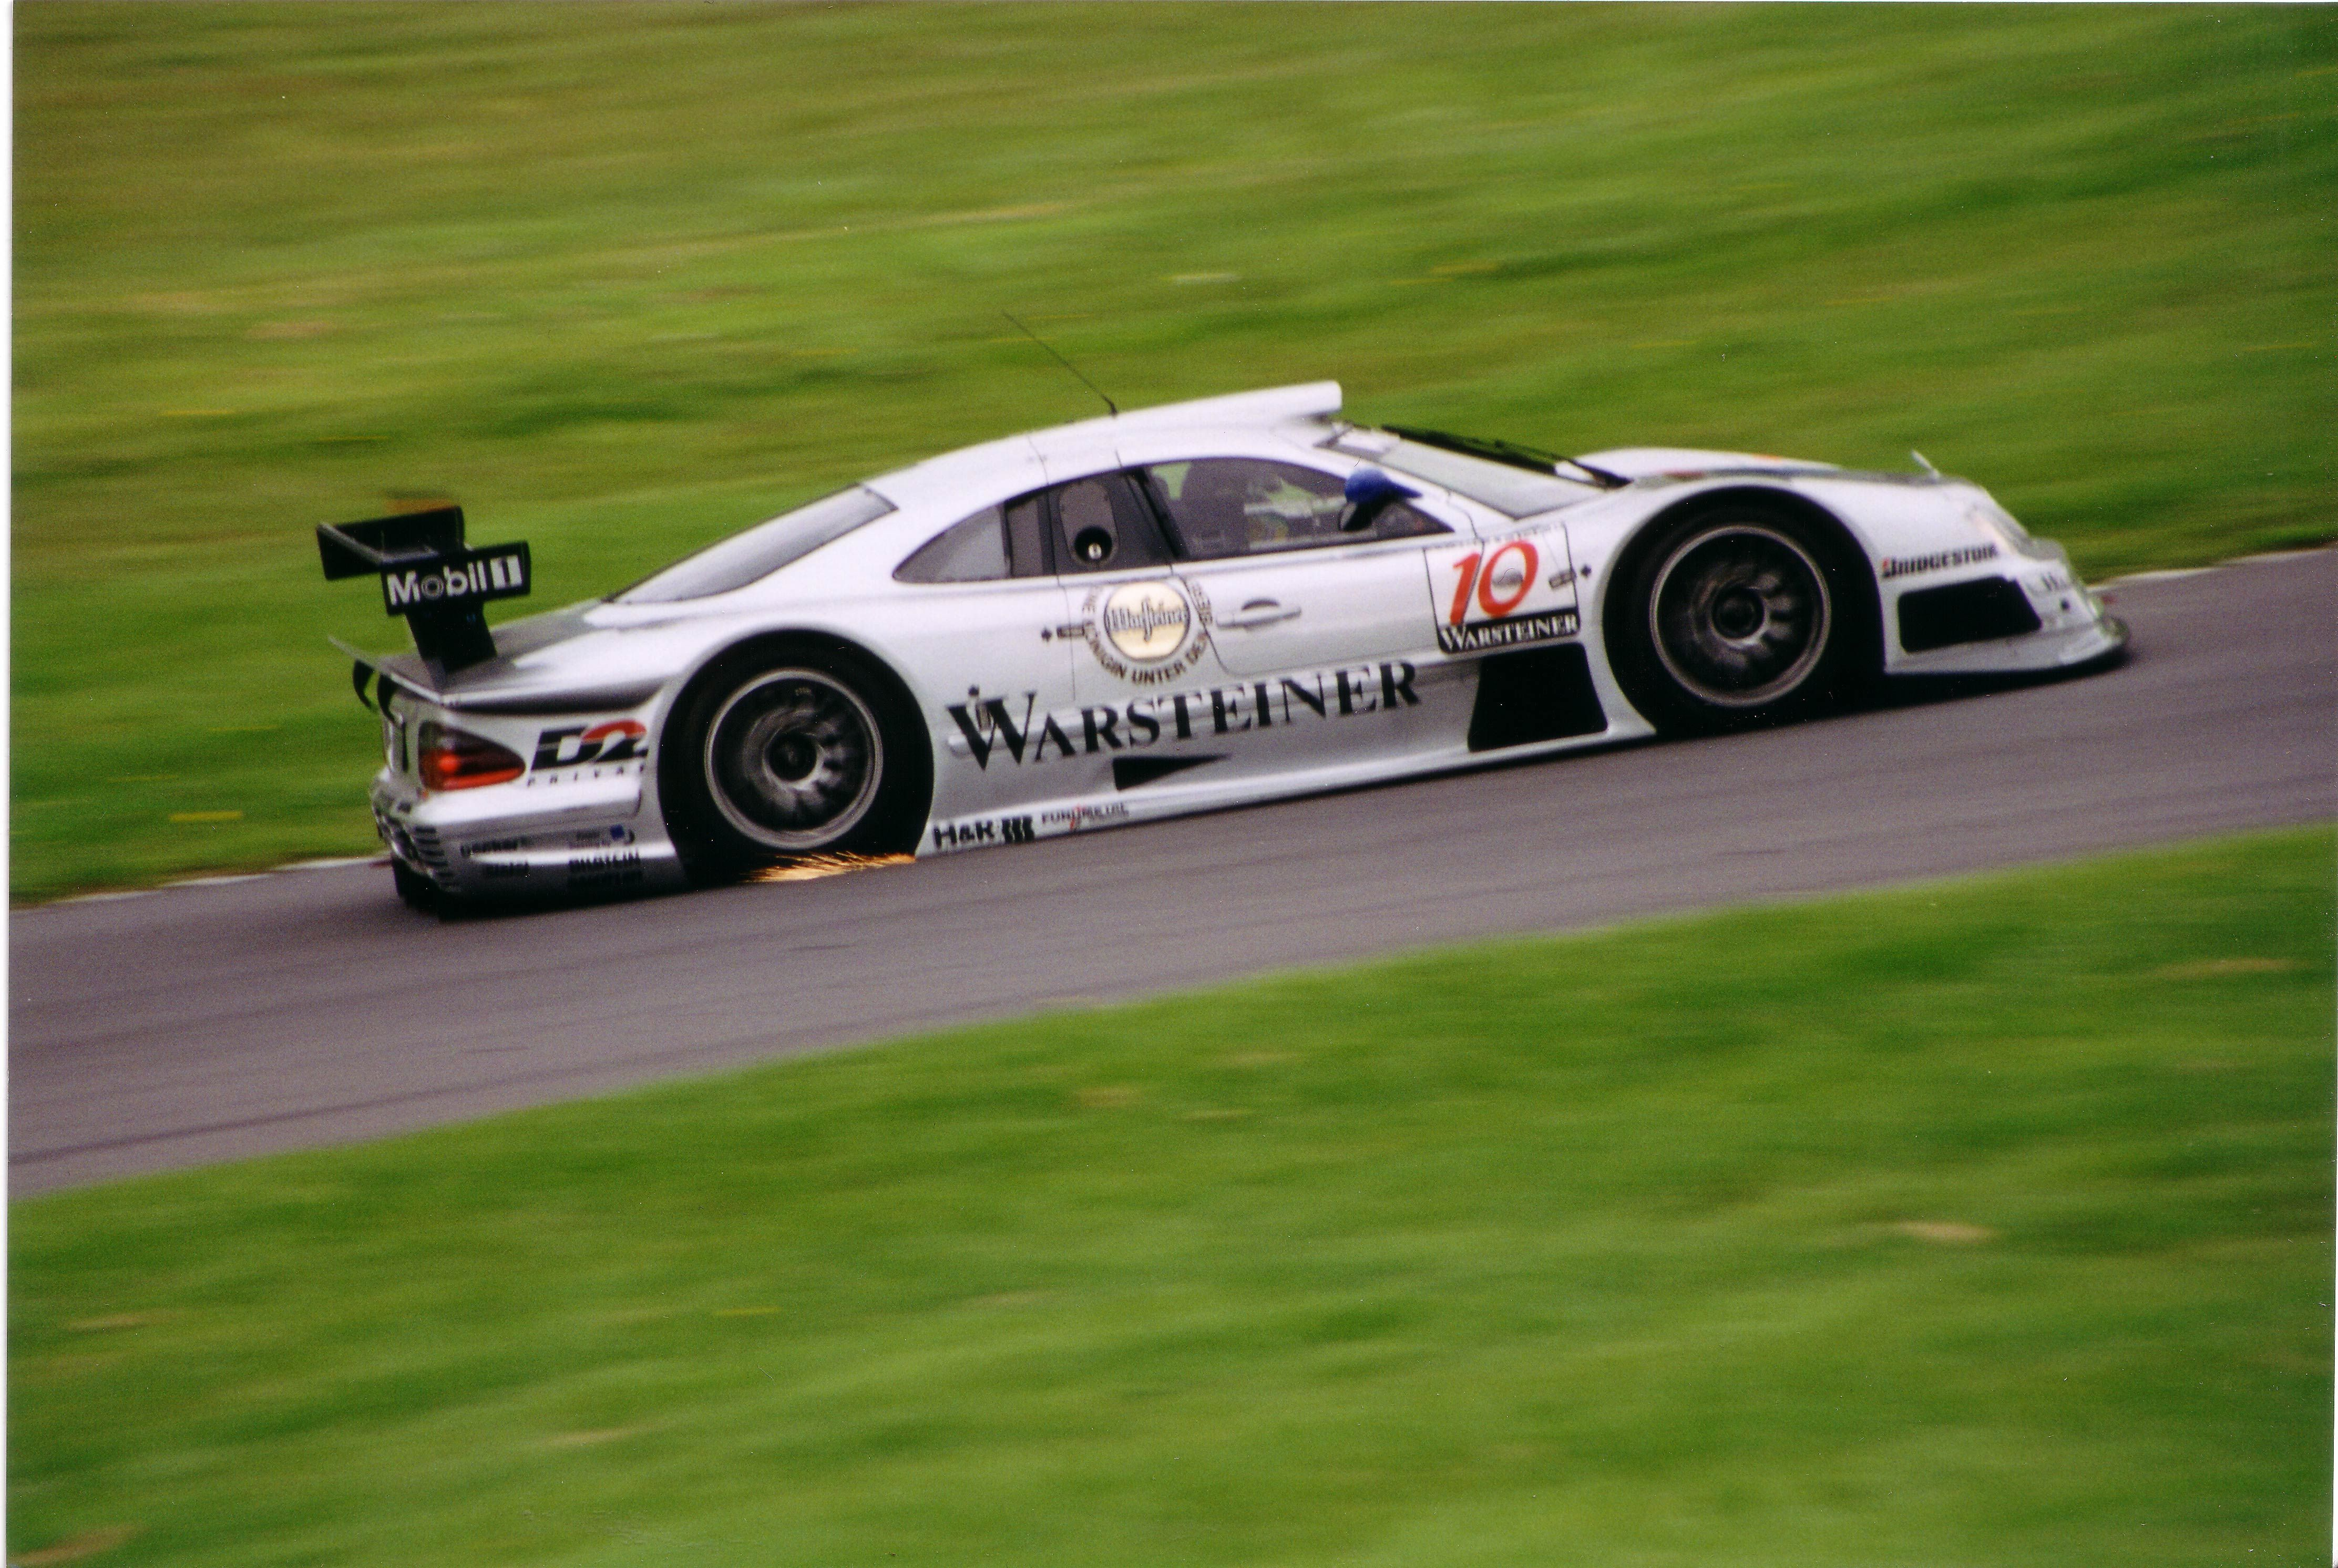 Mercedes CLK GTR - from my favorite era of sports car racing. The ...